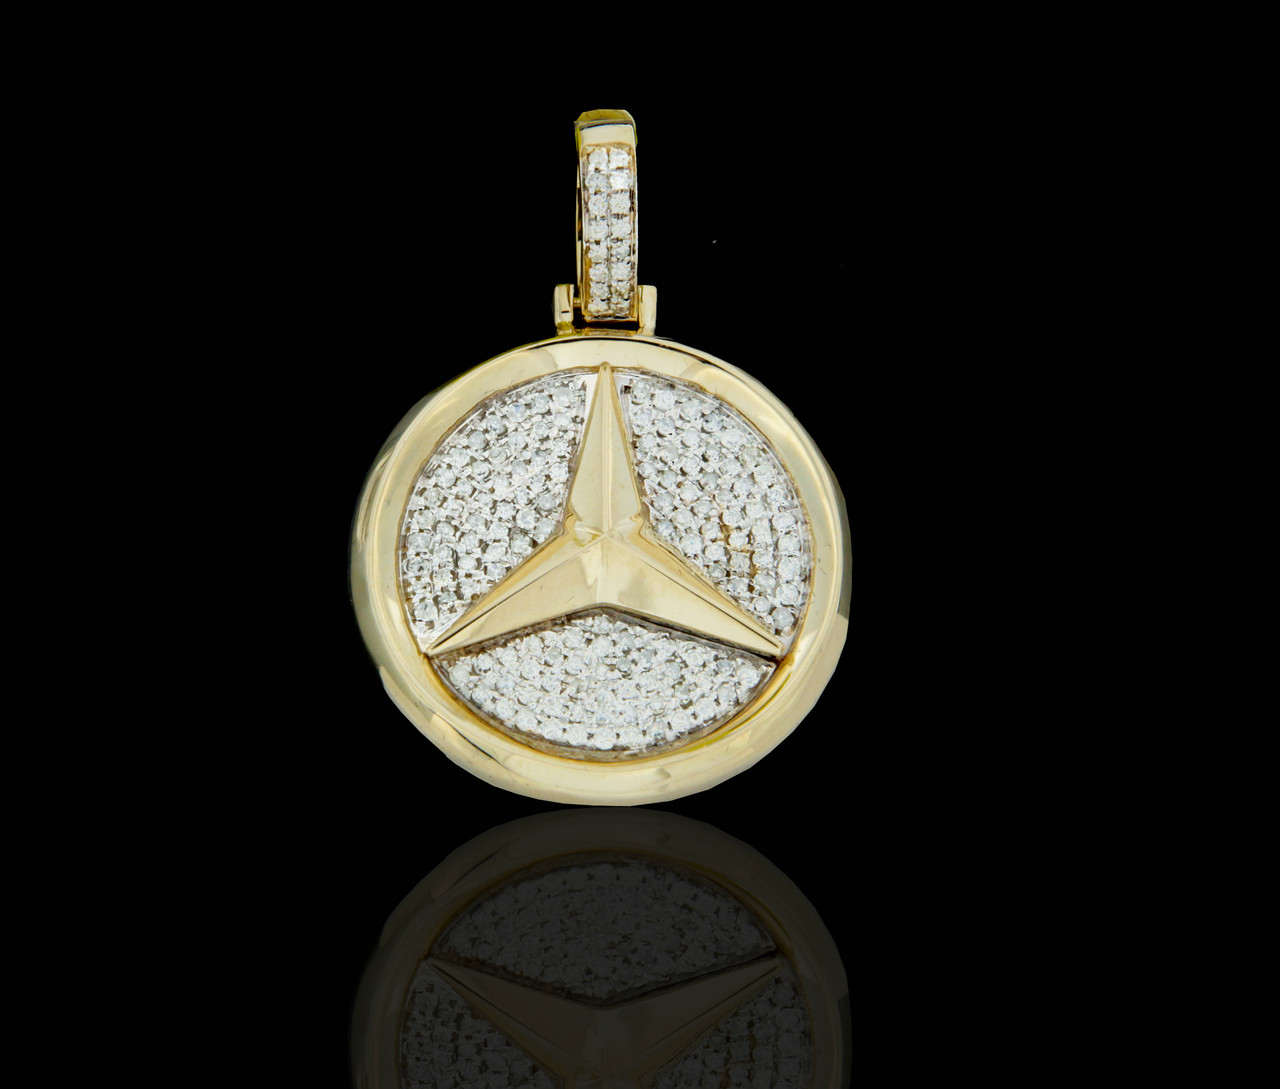 10k gold diamonds mercedes benz pendant king for Mercedes benz charm